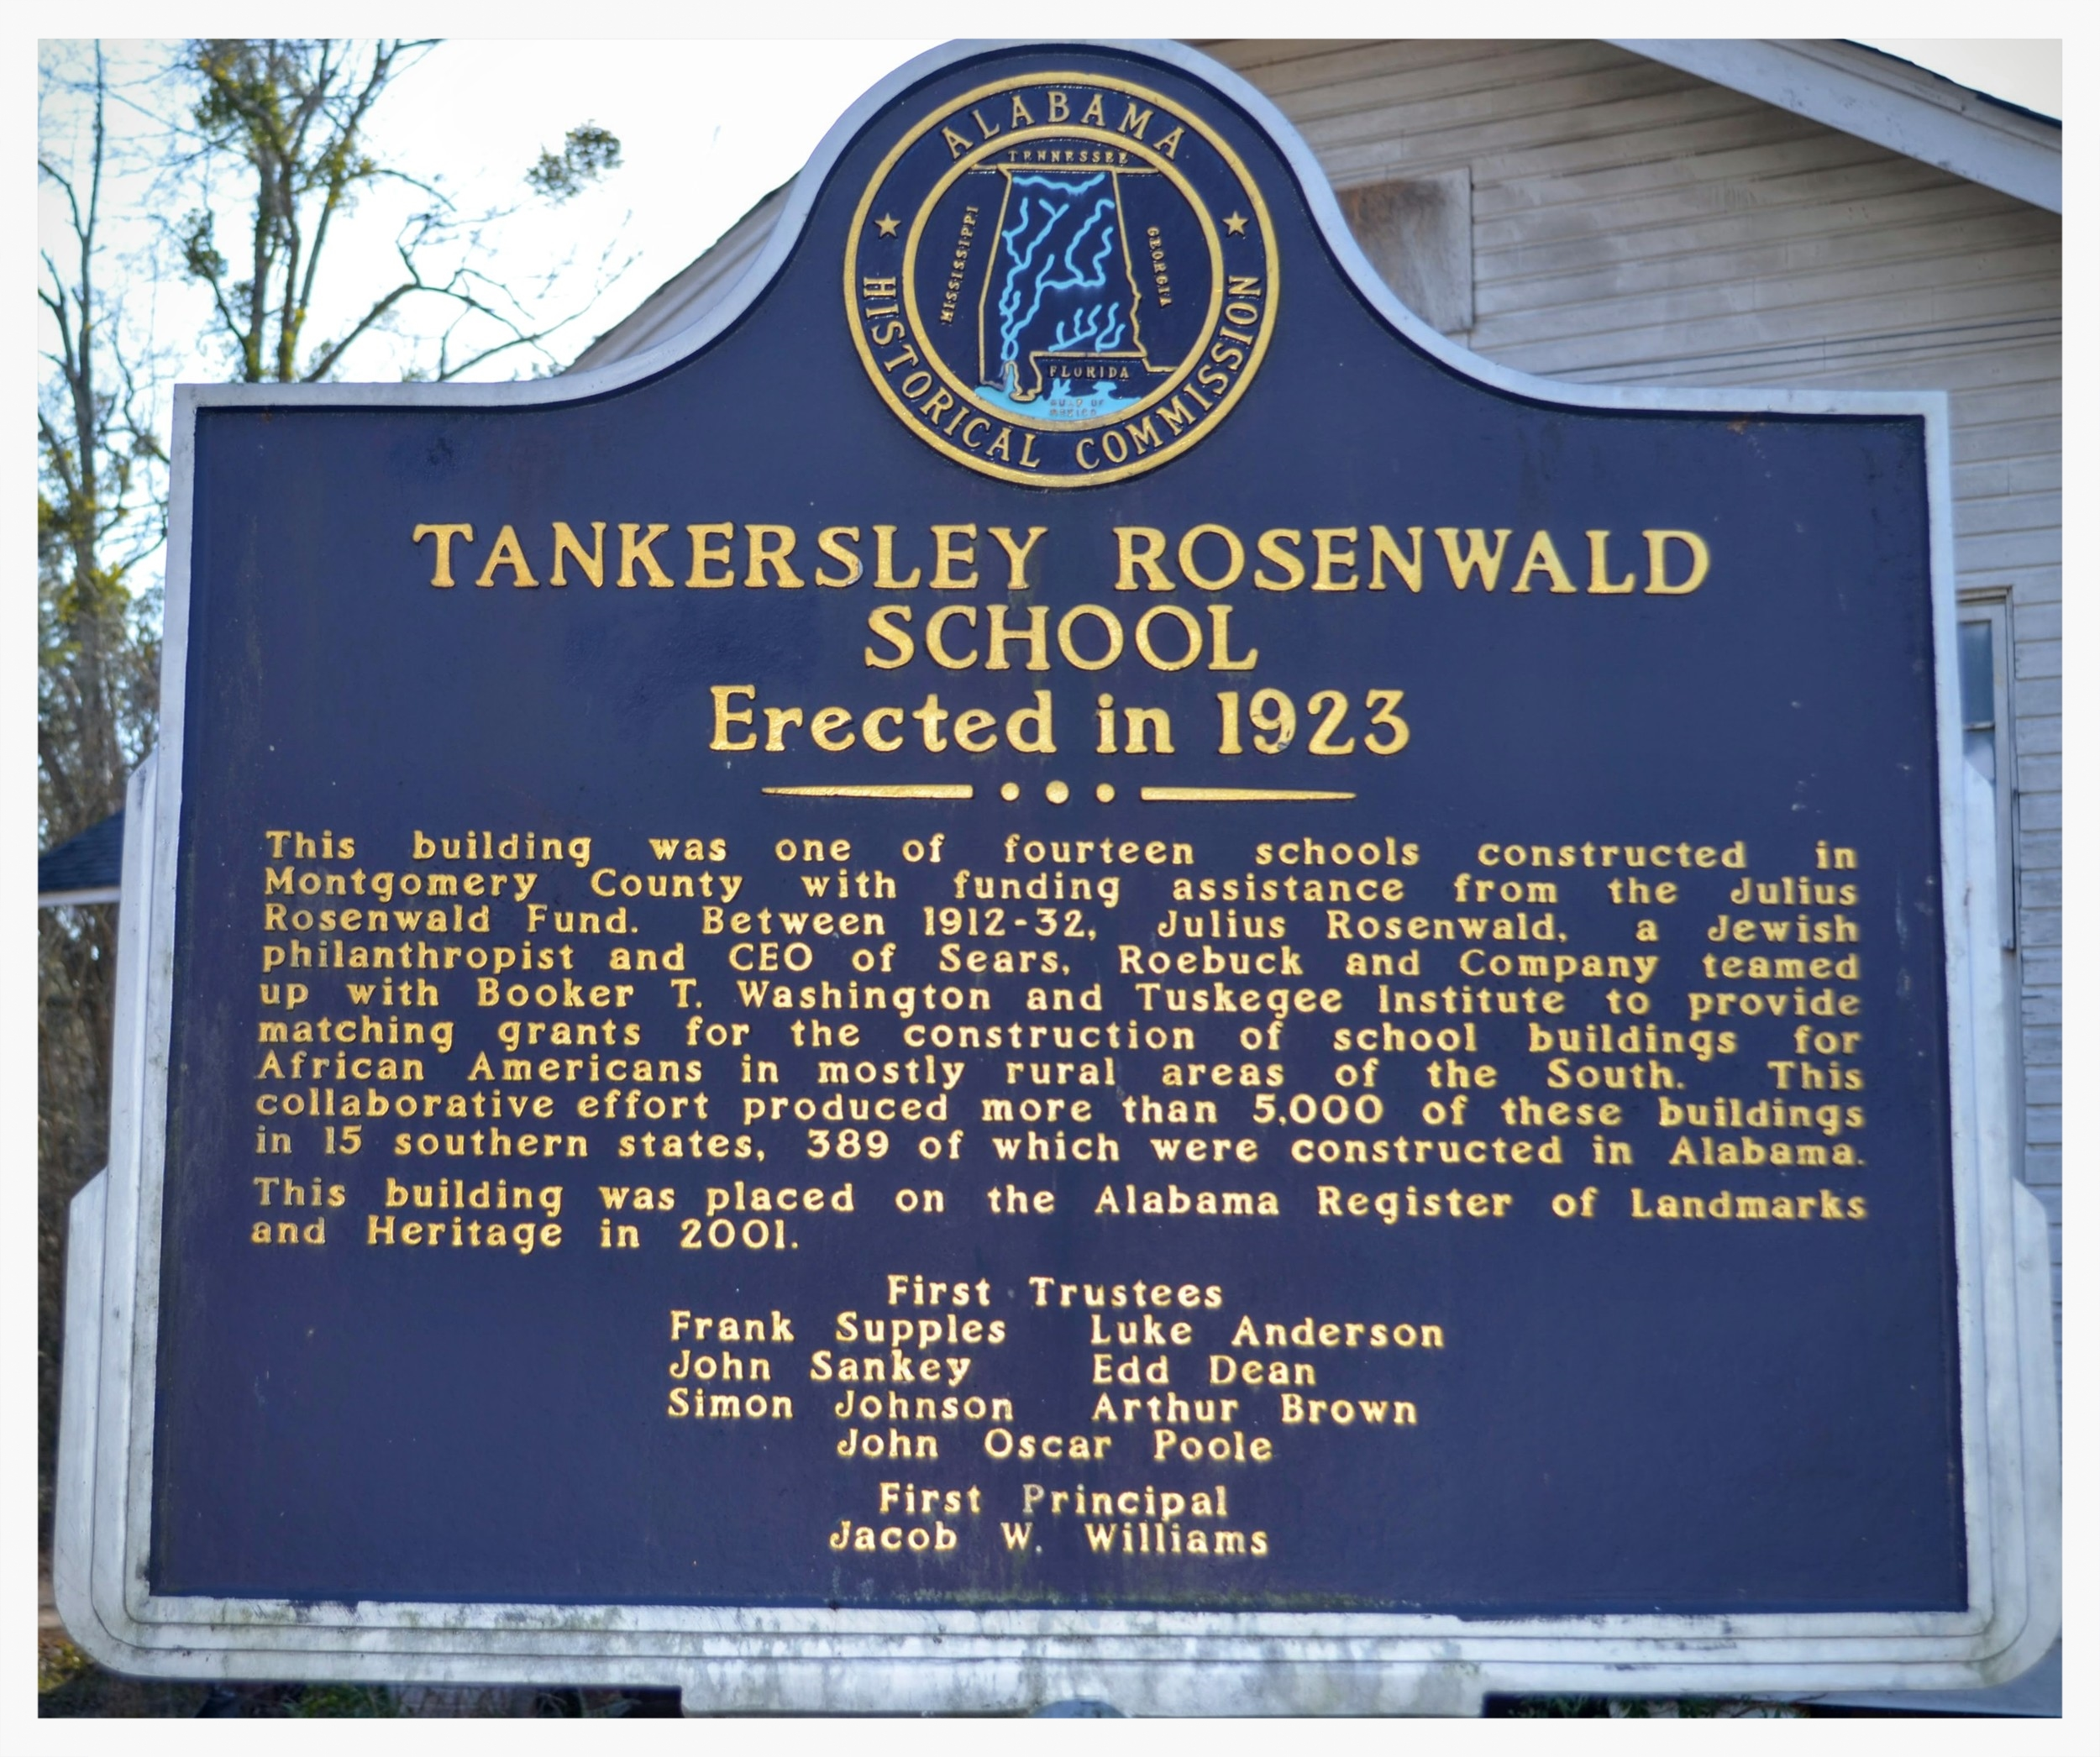 Tankersley Rosenwald School historical marker, Hope Hull, Montgomery County, Alabama